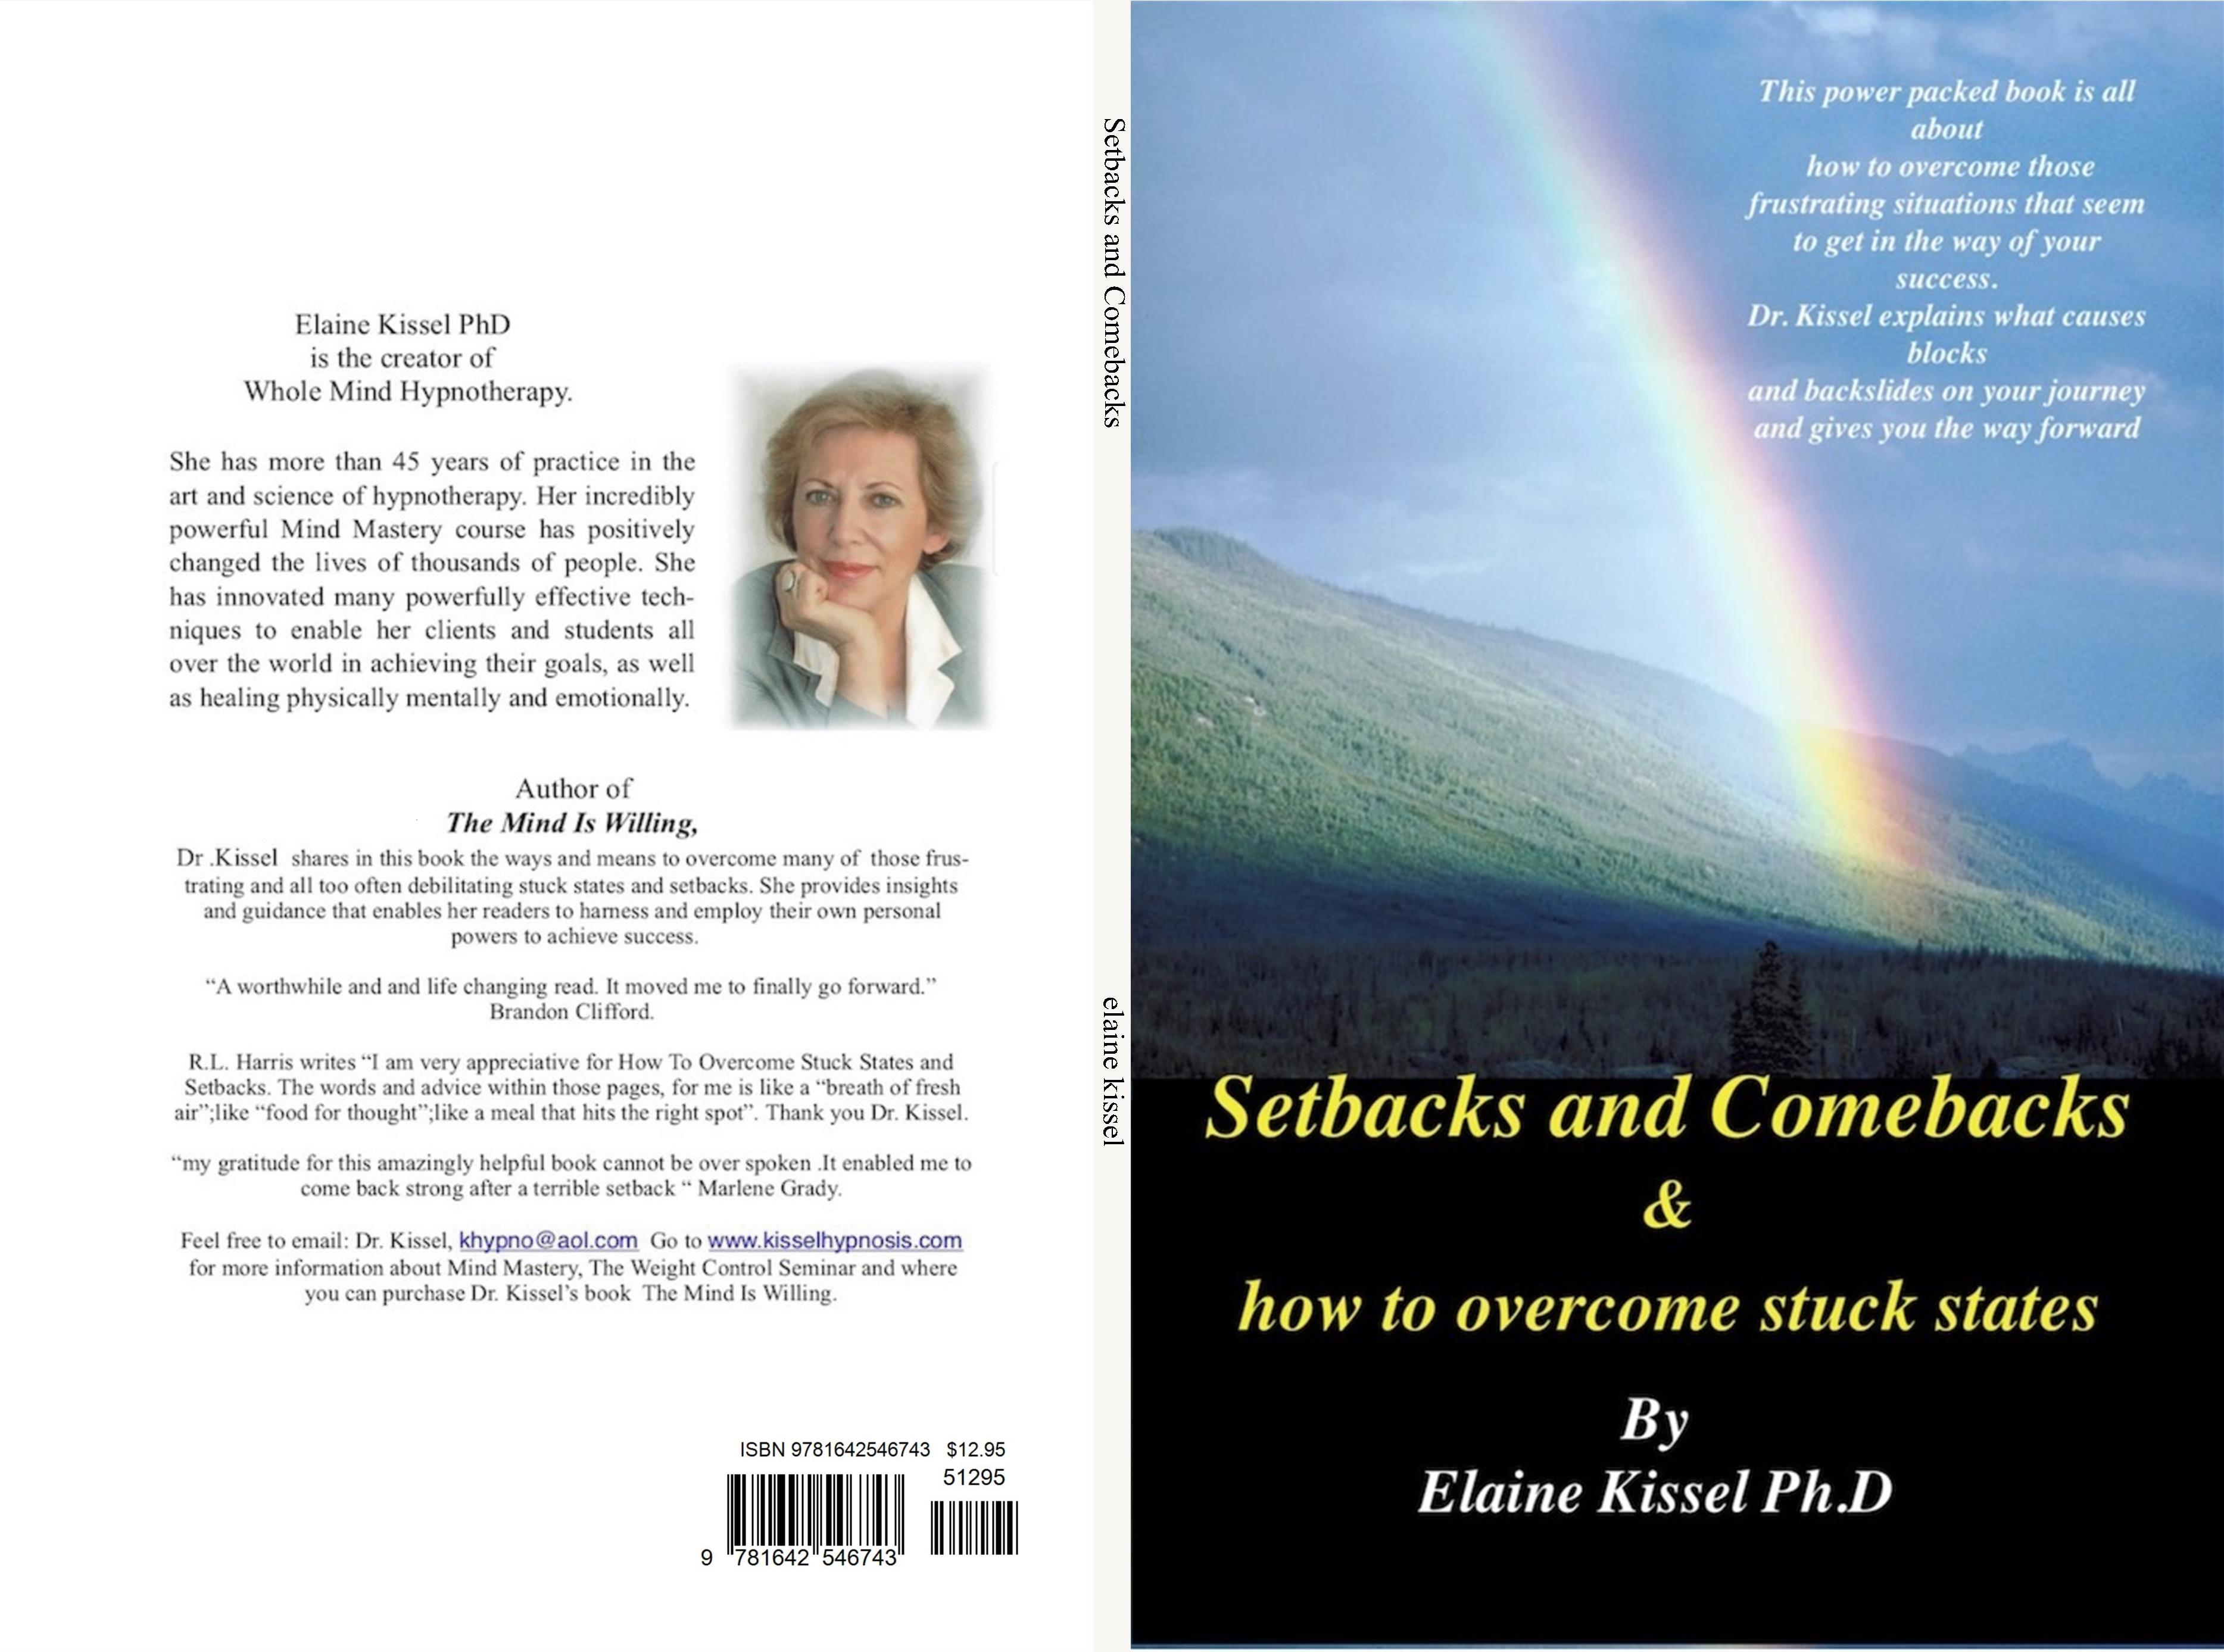 Setbacks and Comebacks & how to overcome stuck states By Elaine Kissel Ph.d cover image